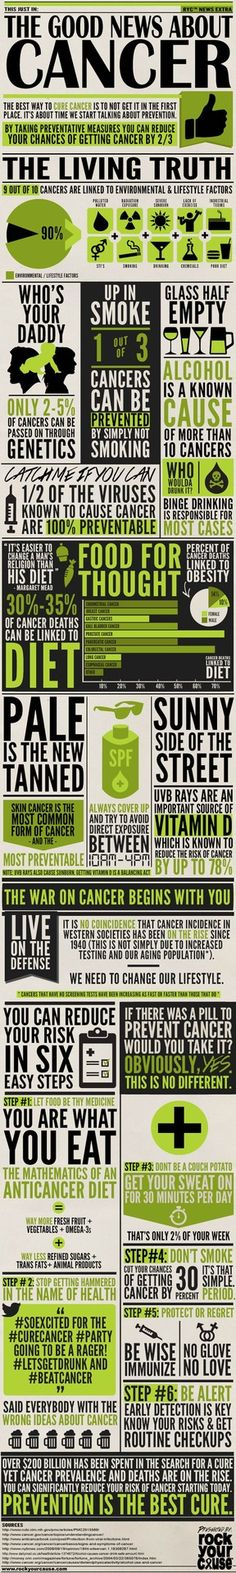 Good News About Cancer Infographic | ^ https://de.pinterest.com/redlippedgirl/busy-busy-bee/